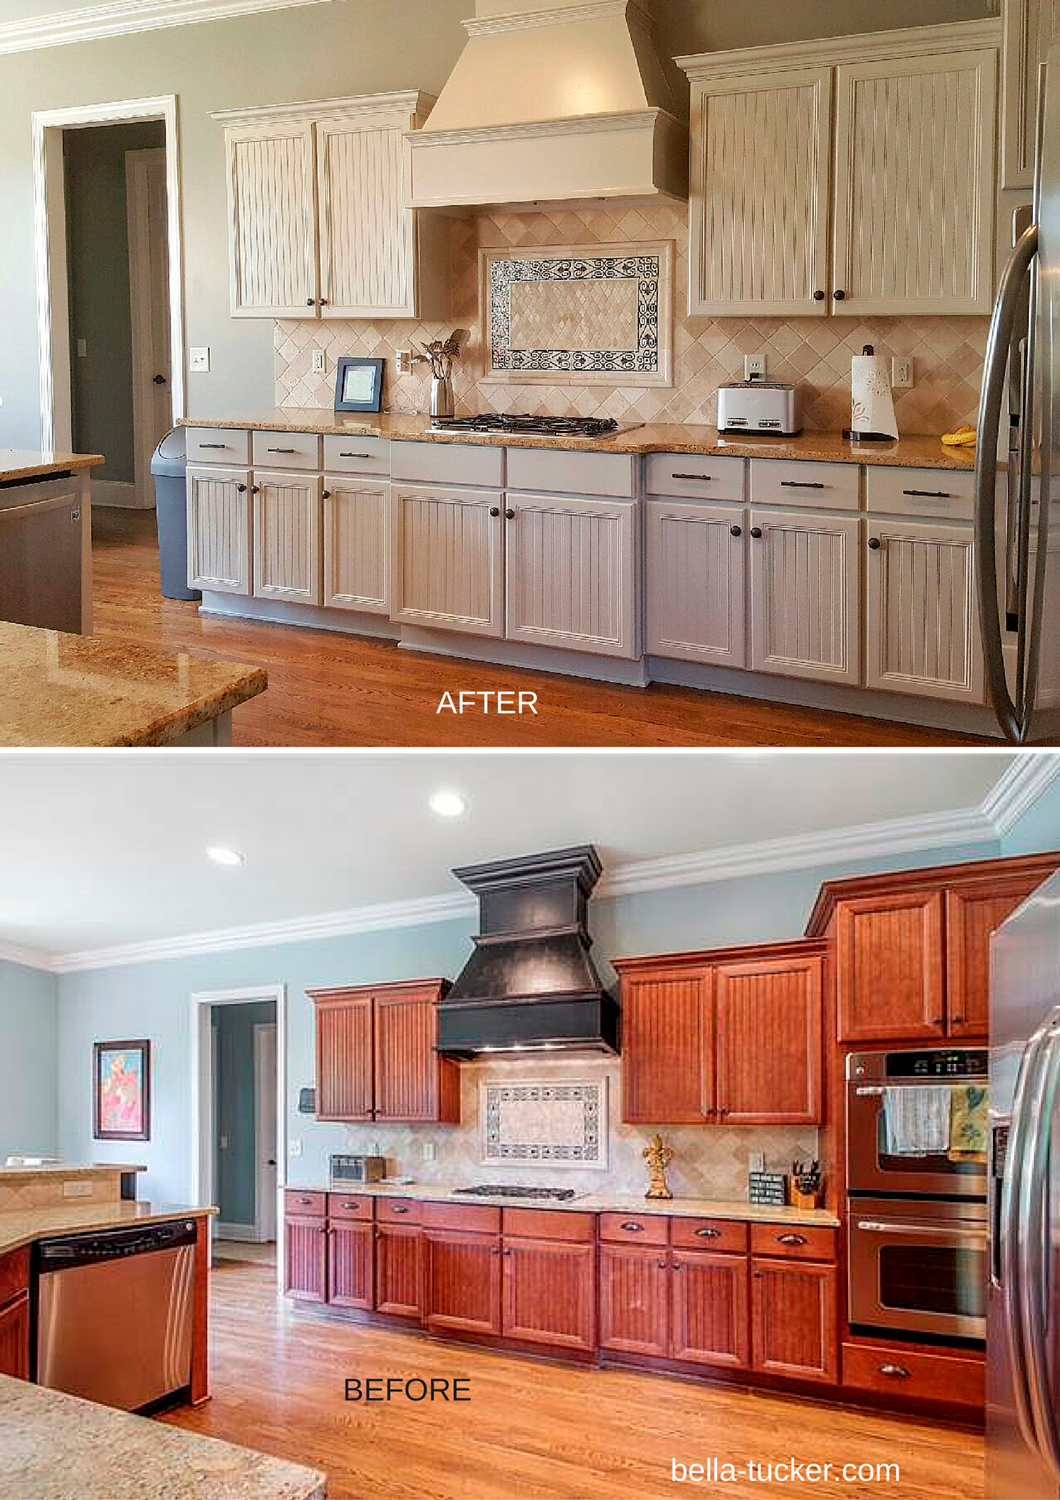 Images Of Painted Kitchen Cabinets Painted Cabinets Nashville Tn Before And After Photos